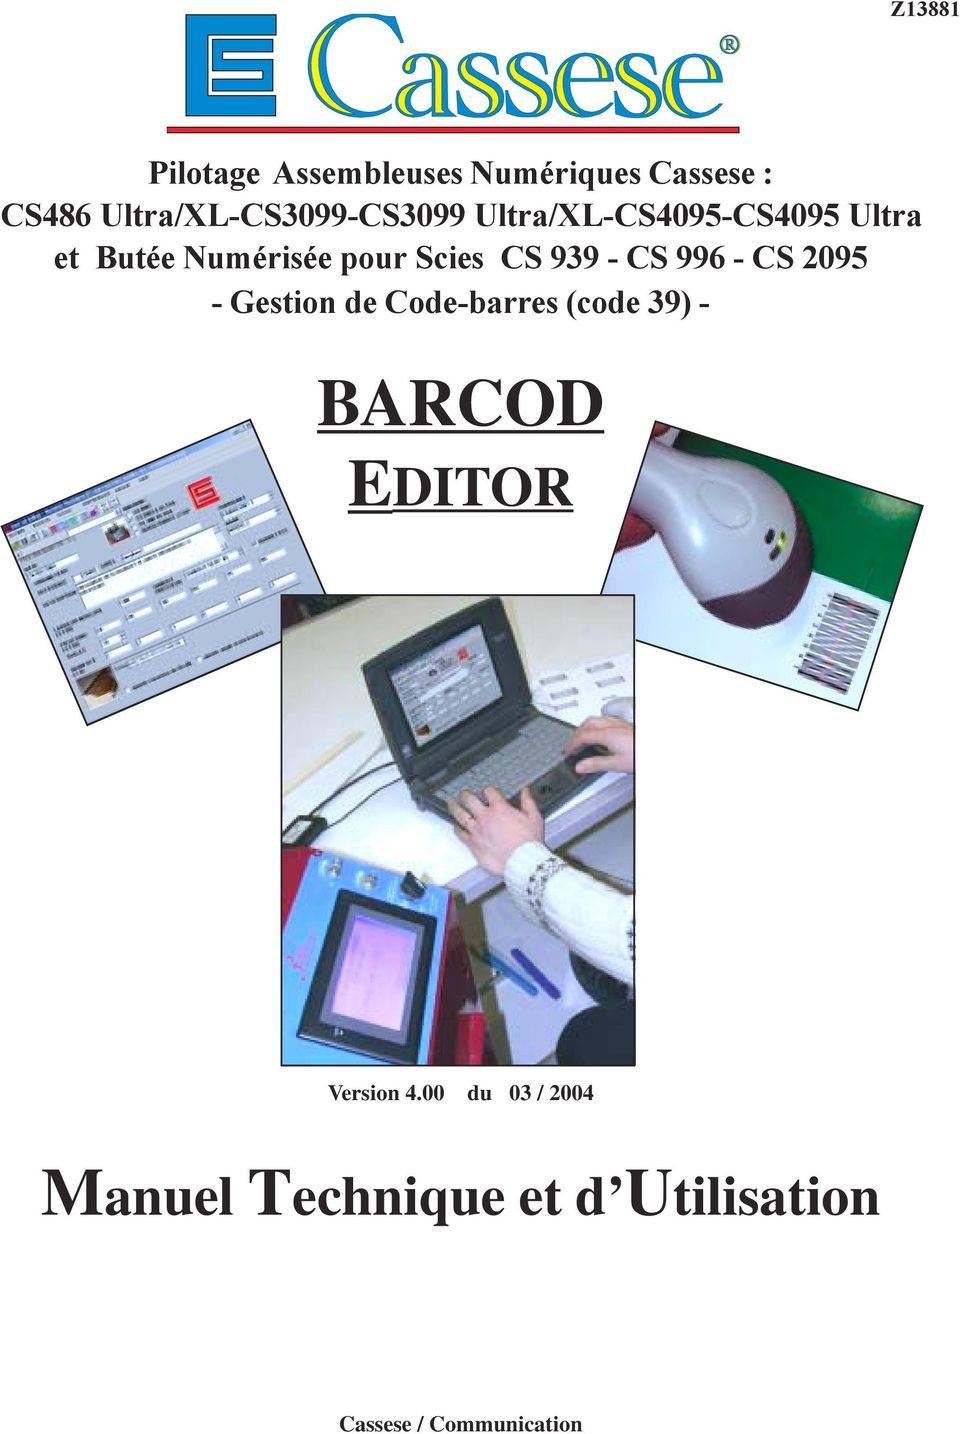 pour Scies CS 939 - CS 996 - CS 2095 - Gestion de Code-barres (code 39) -